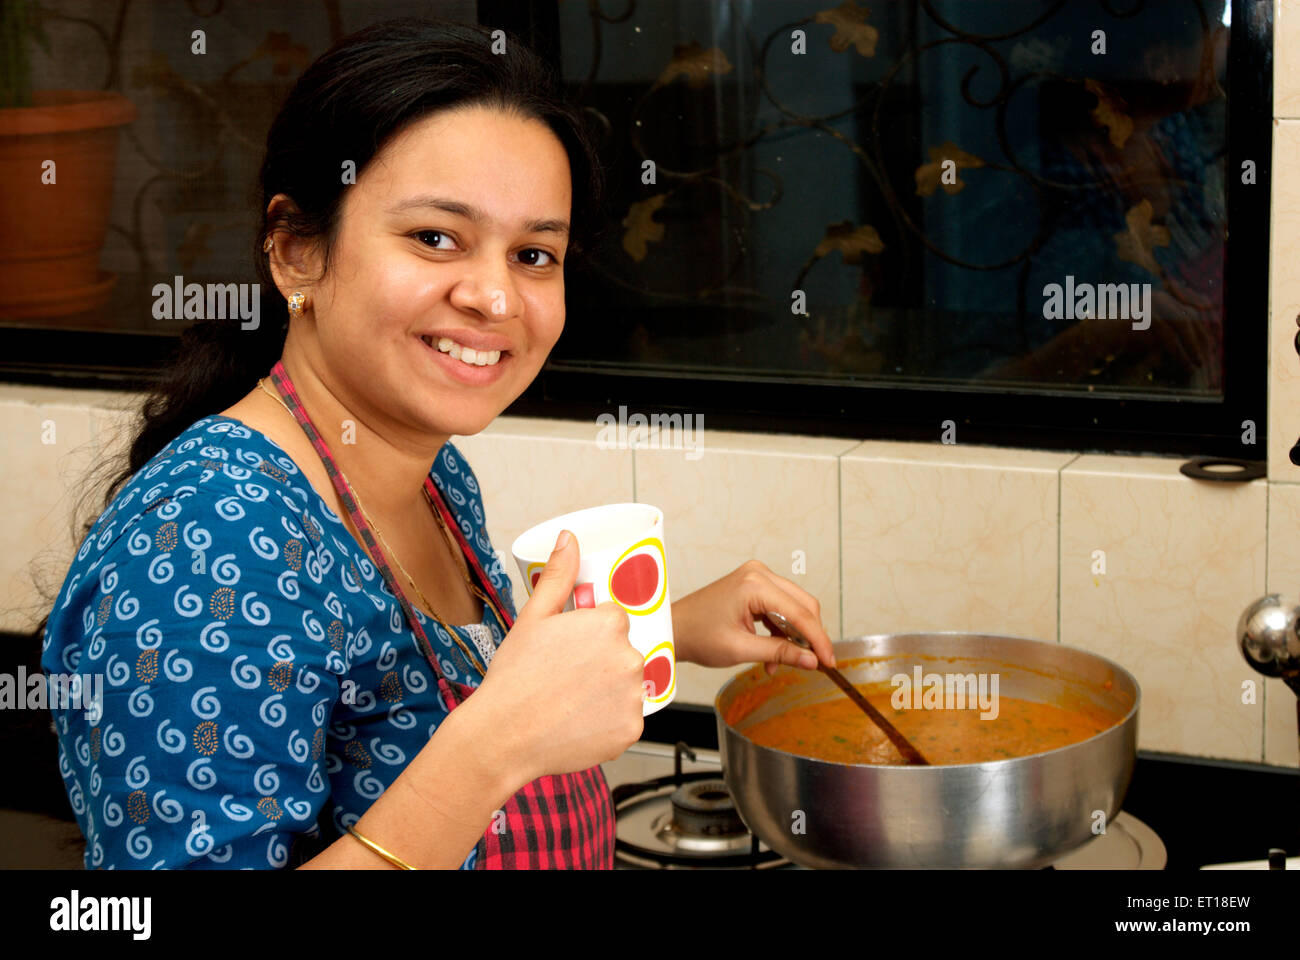 https://c8.alamy.com/comp/ET18EW/indian-young-woman-cooking-in-the-kitchen-mr364-ET18EW.jpg Indian Woman Cooking